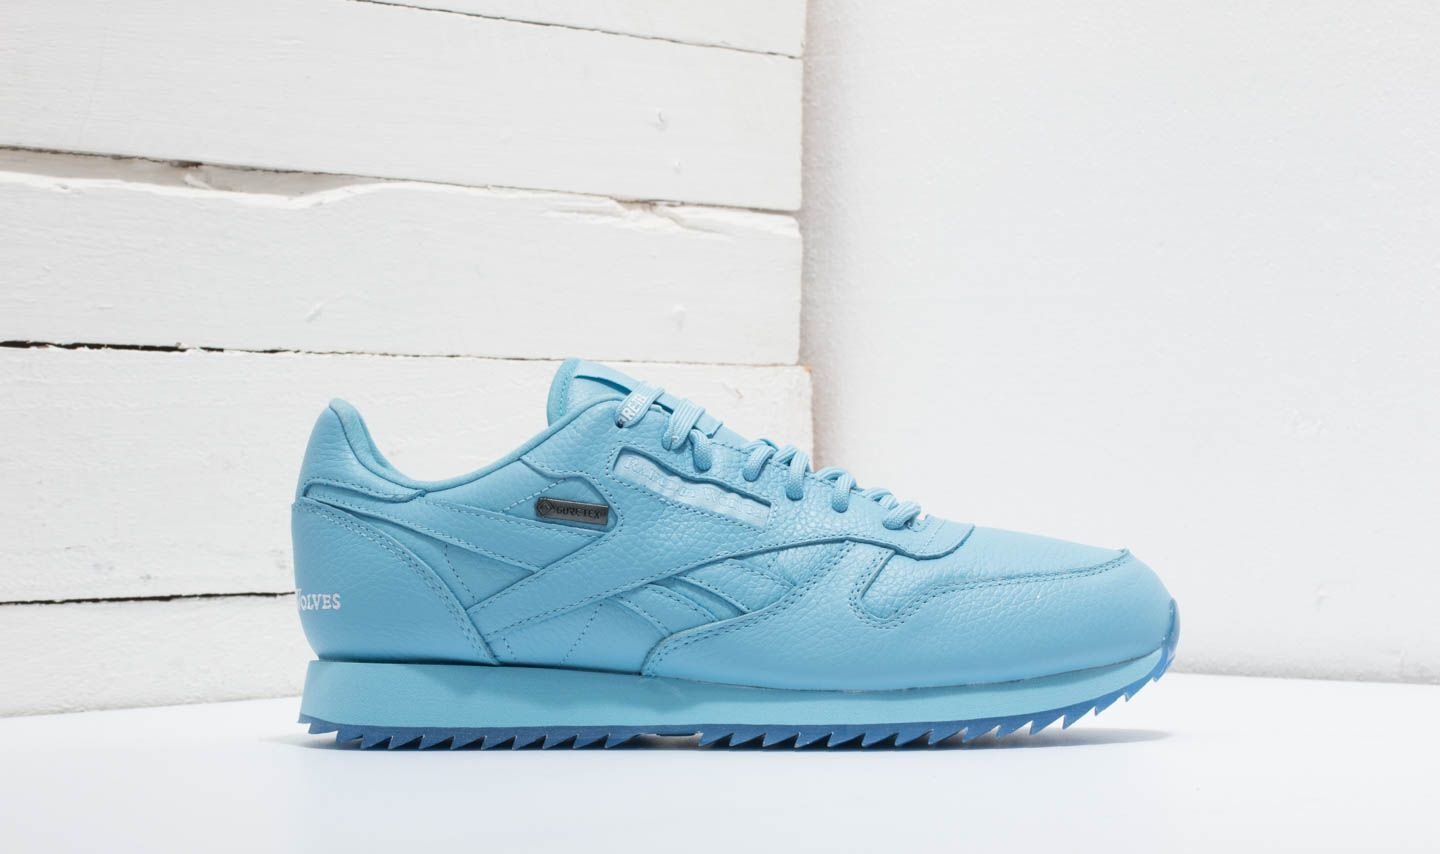 1bd5d9a64de Reebok x Raised by Wolves Classic Leather Ripple Gore-Tex Cape Blue  White-